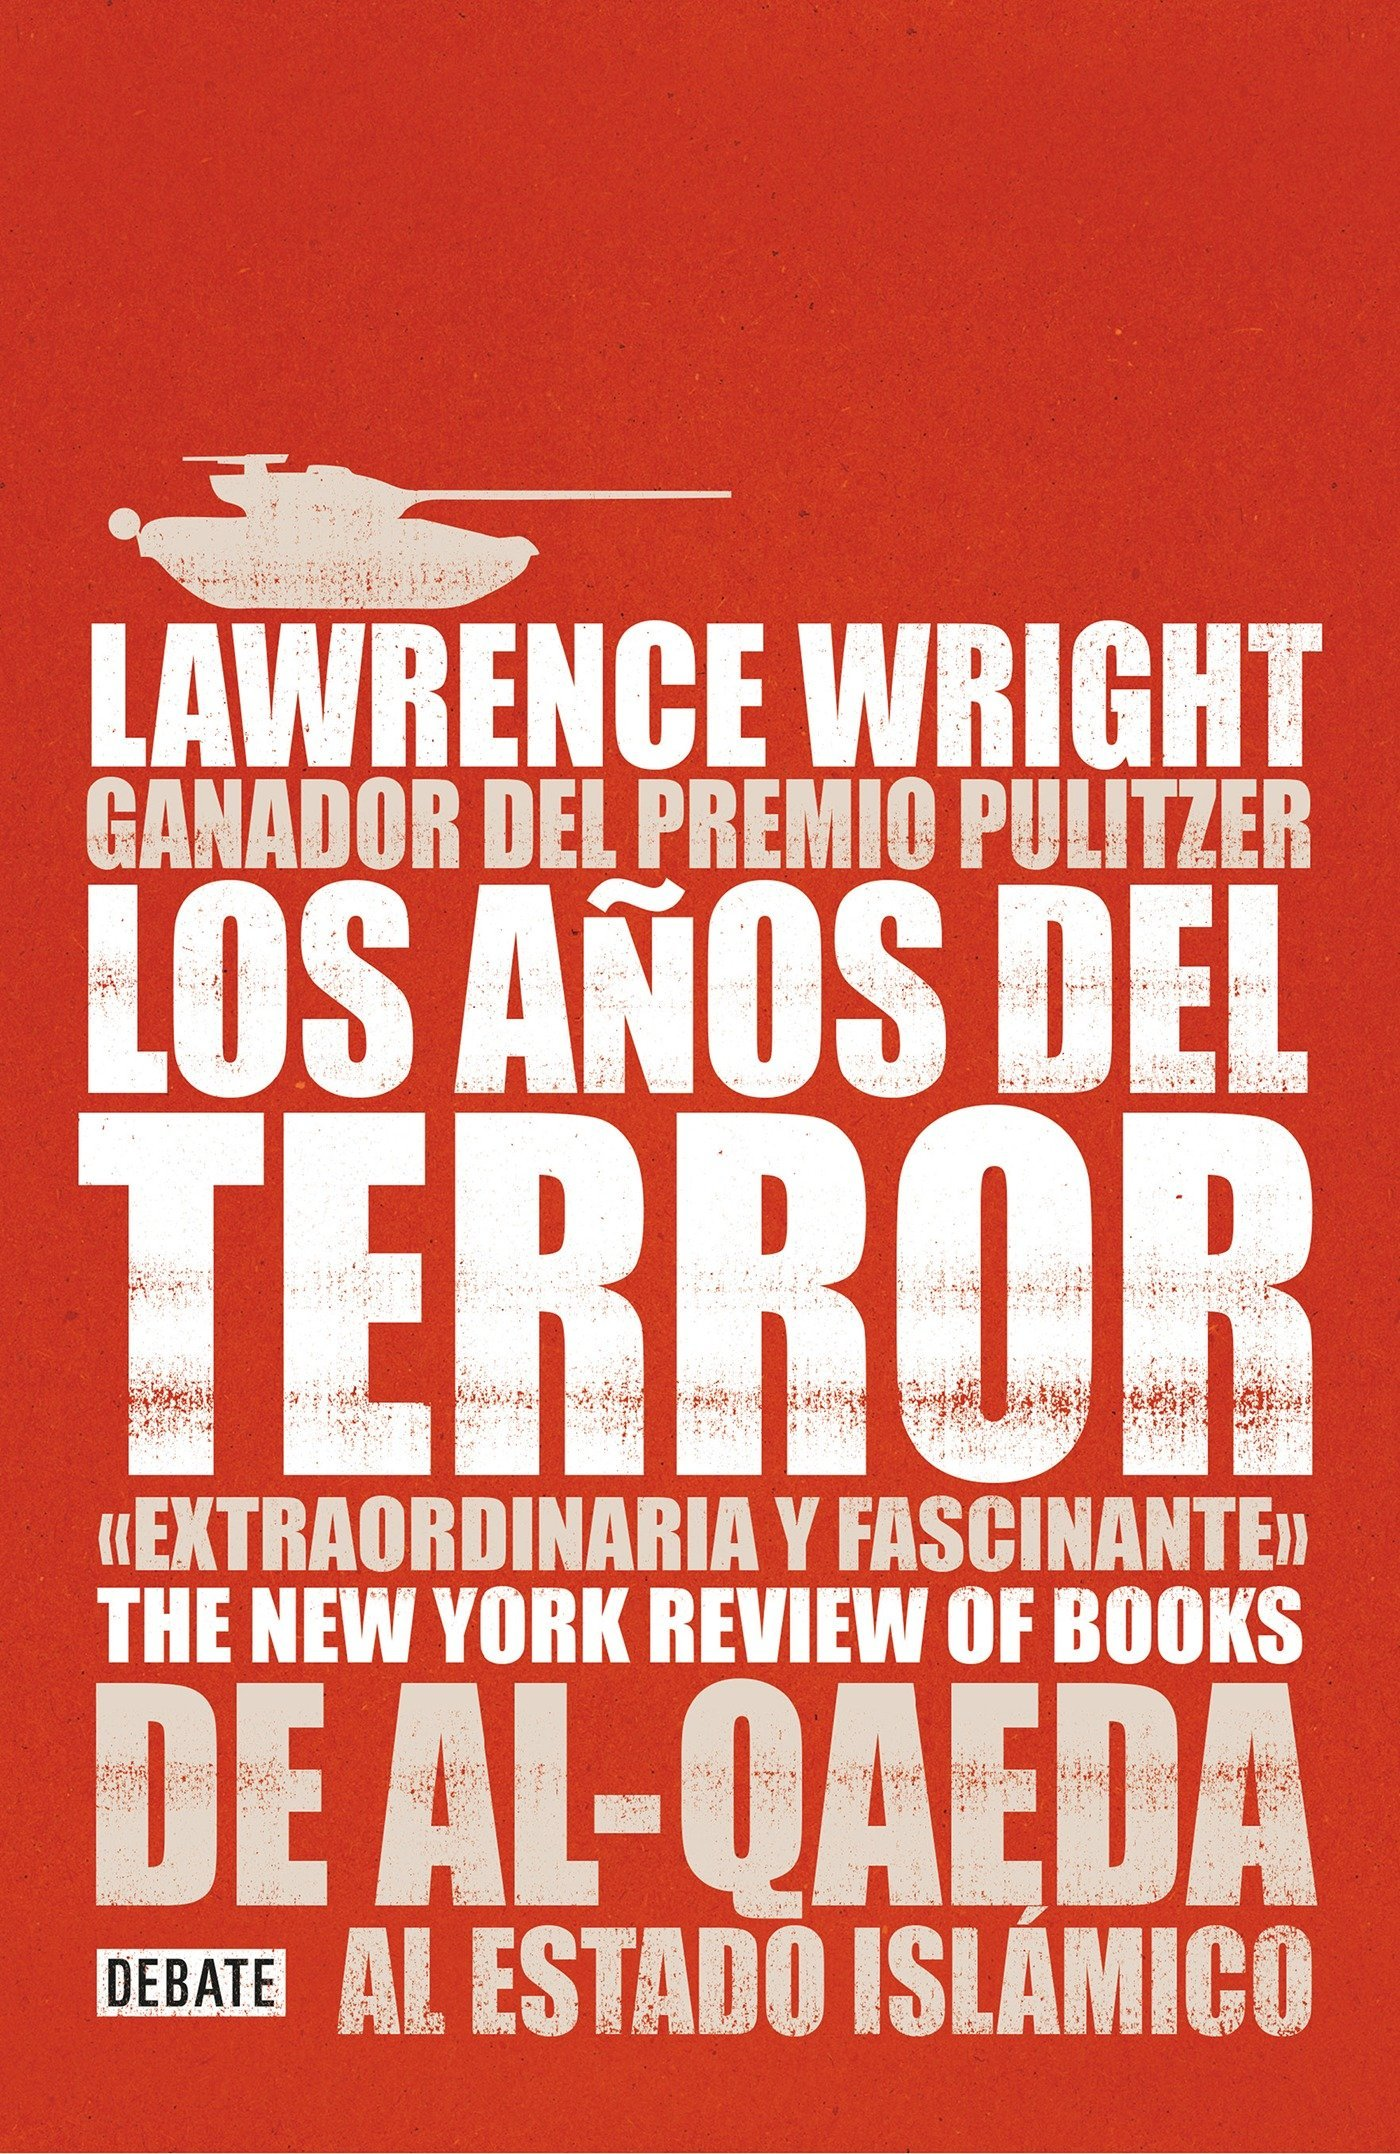 Los años del terror /The Terror Years: From al-Qaeda to the Islamic State: De Al - Qaeda al estado islamico (Spanish Edition) by Debate